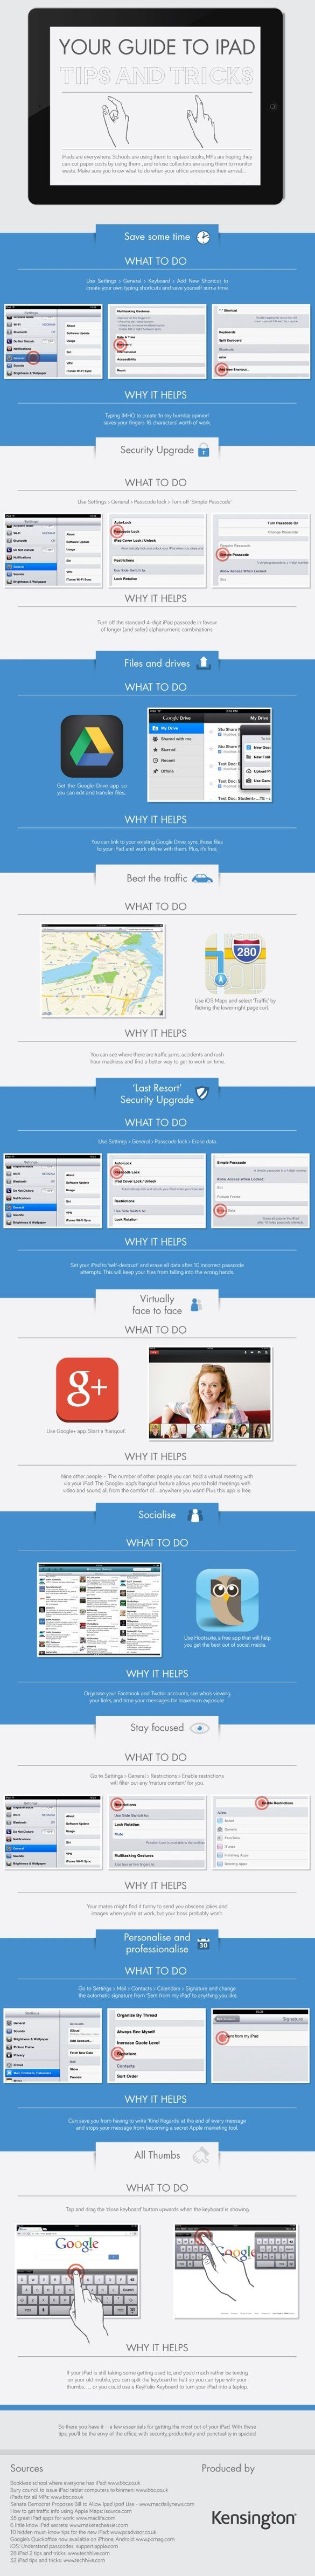 A Nice Graphic on iPad Tips and Tricks ~ Educational Technology and Mobile Learning